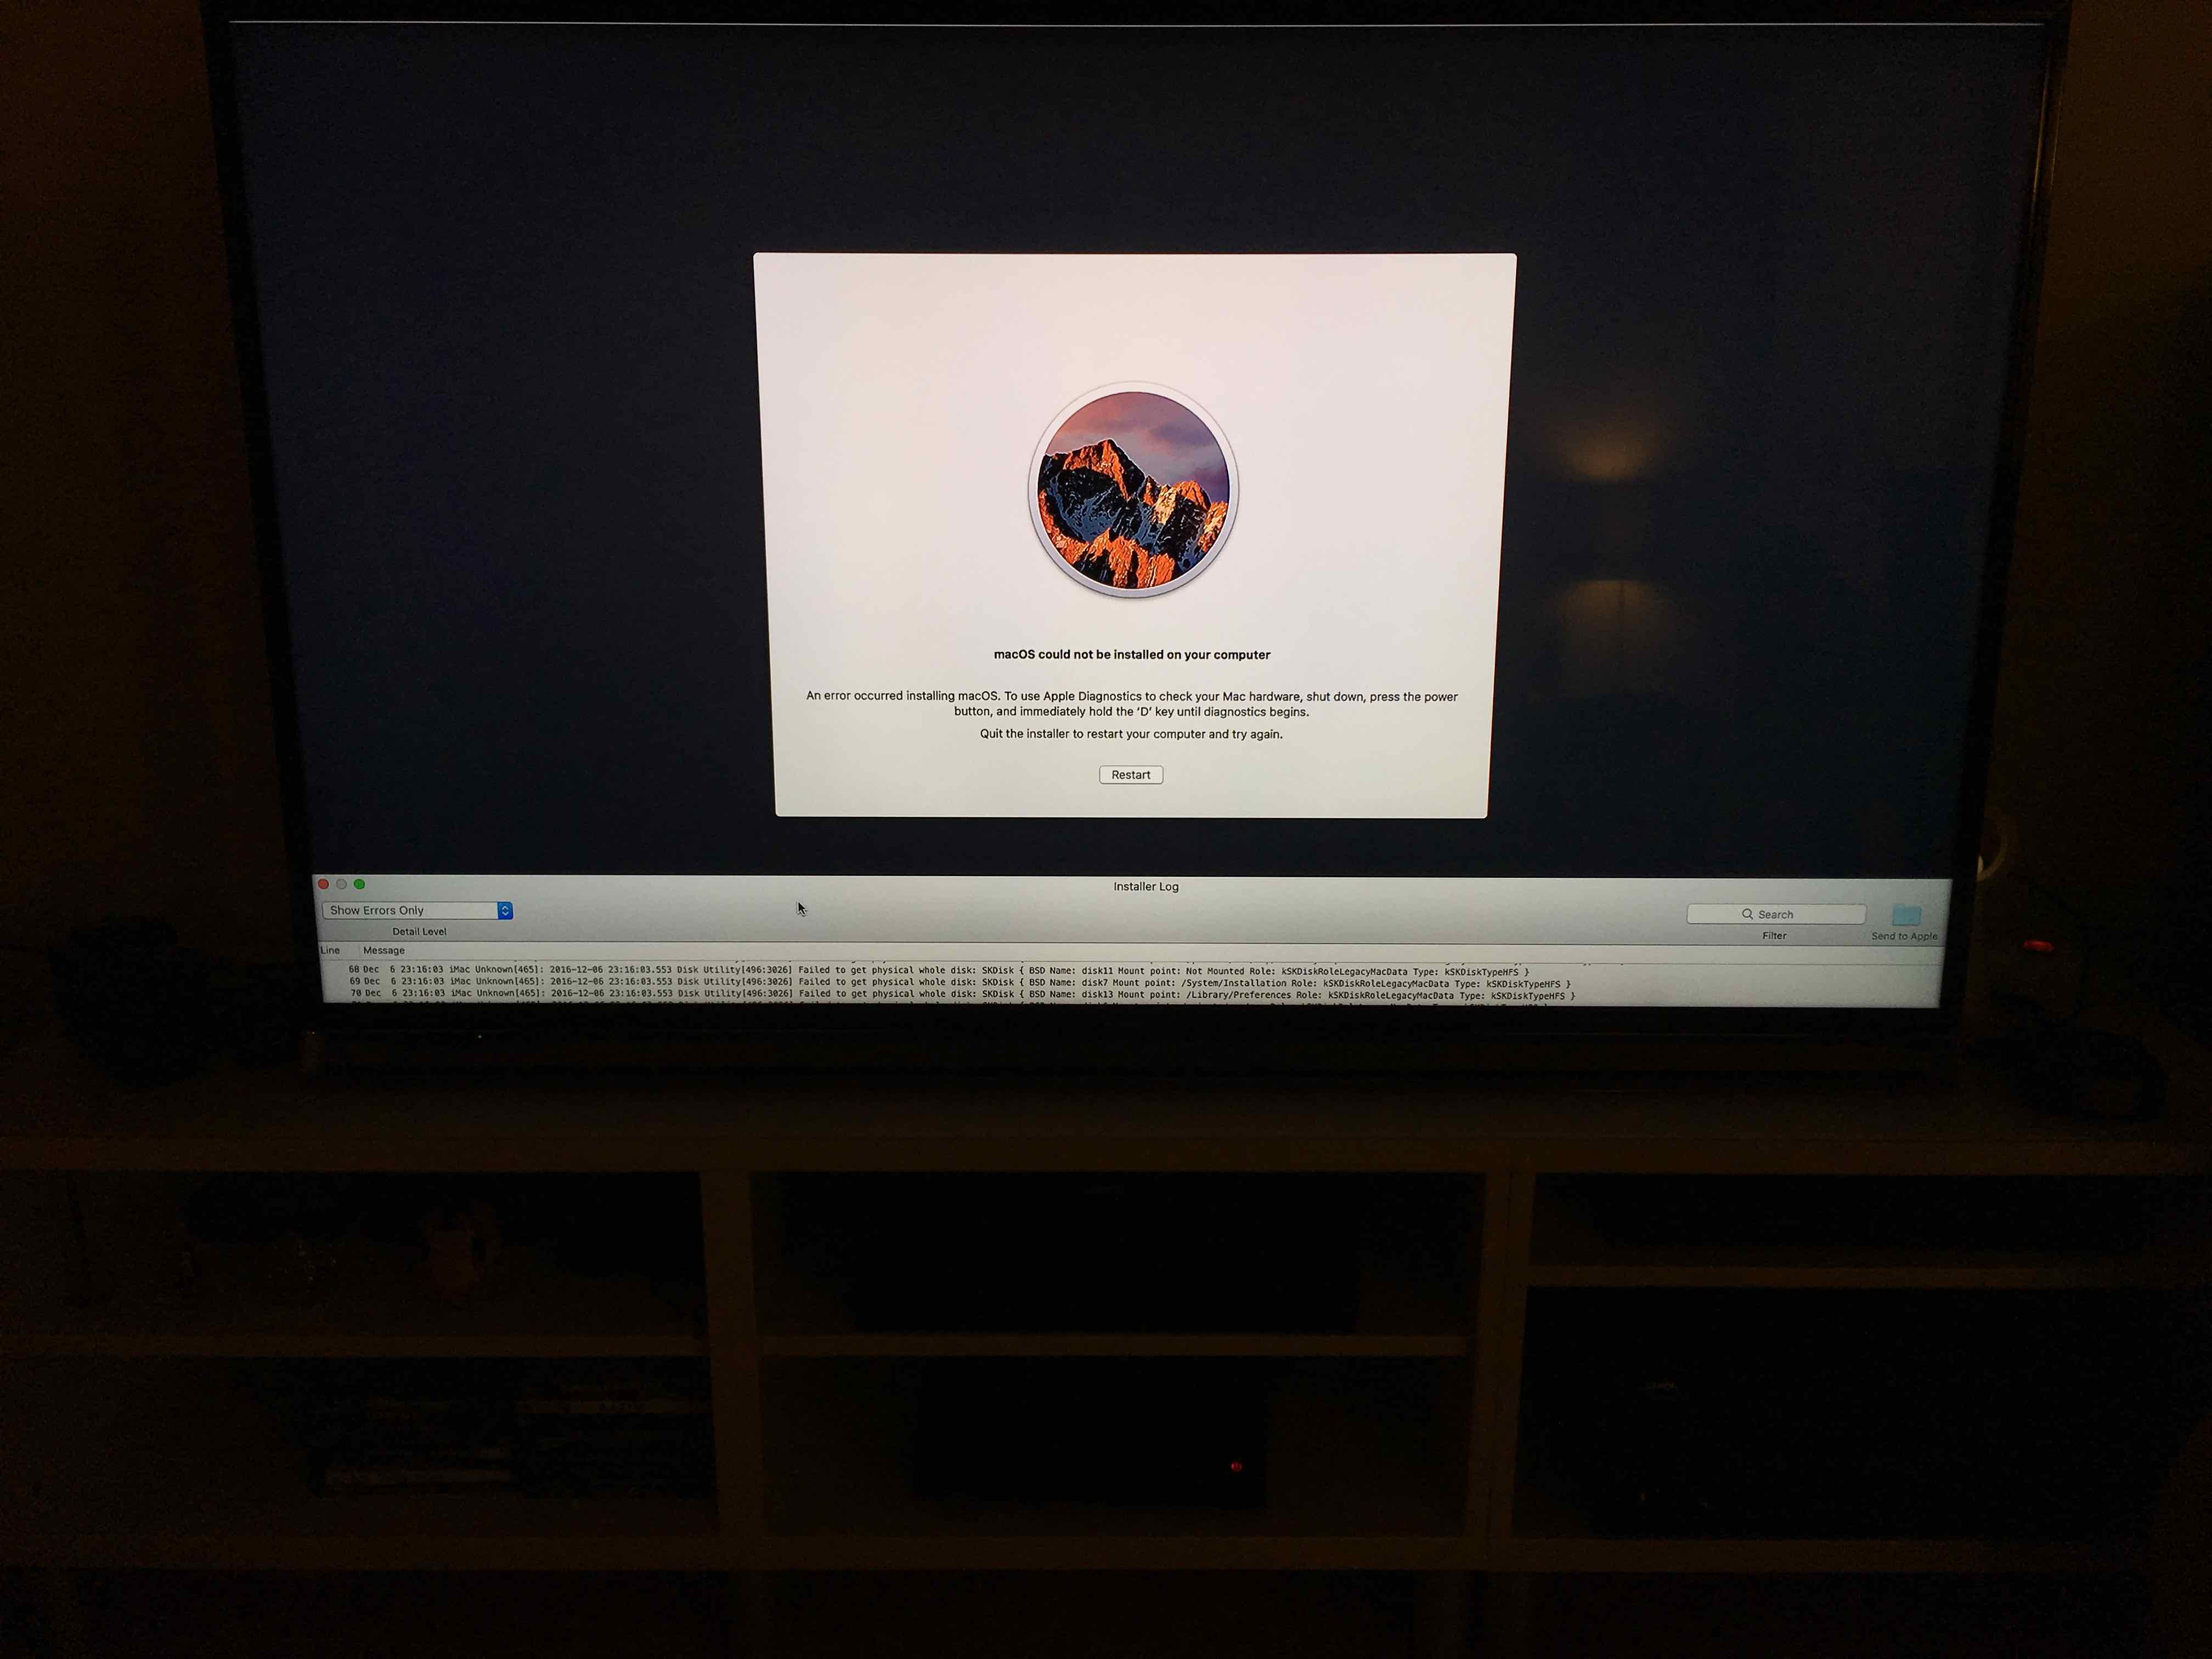 Gigabyte Z170X Designare: MacOS could not be installed on